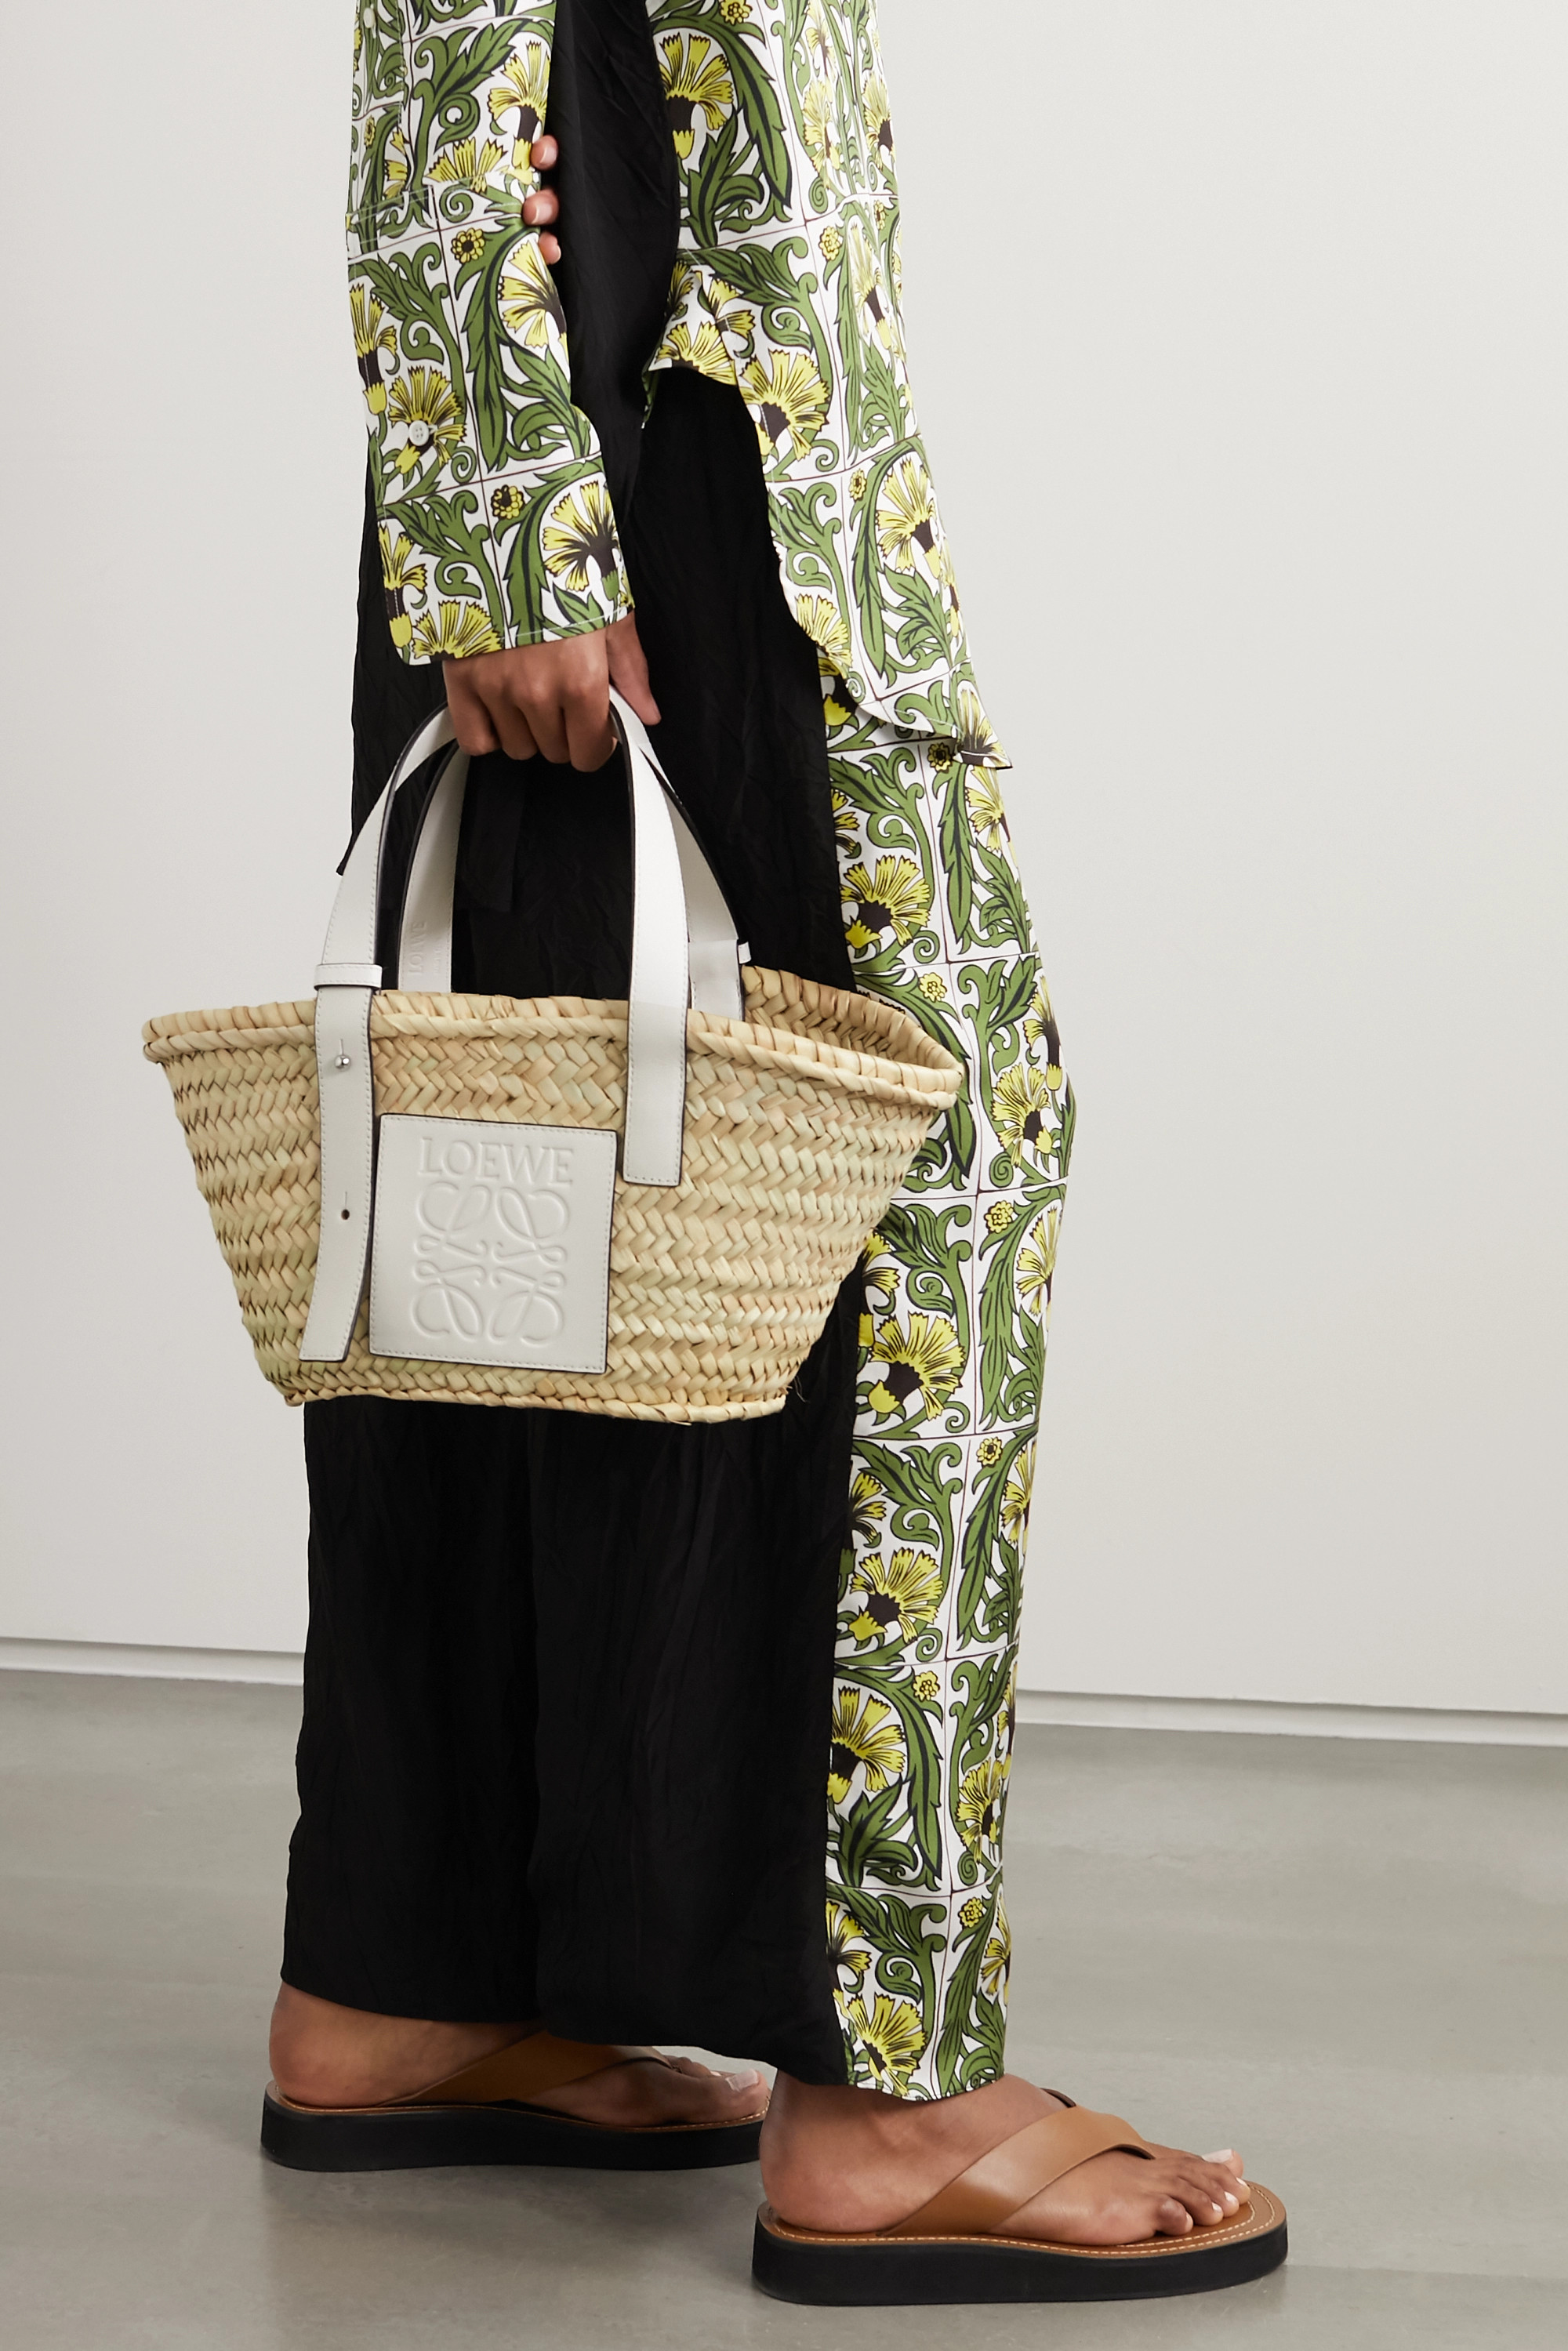 Loewe Small leather-trimmed woven raffia tote